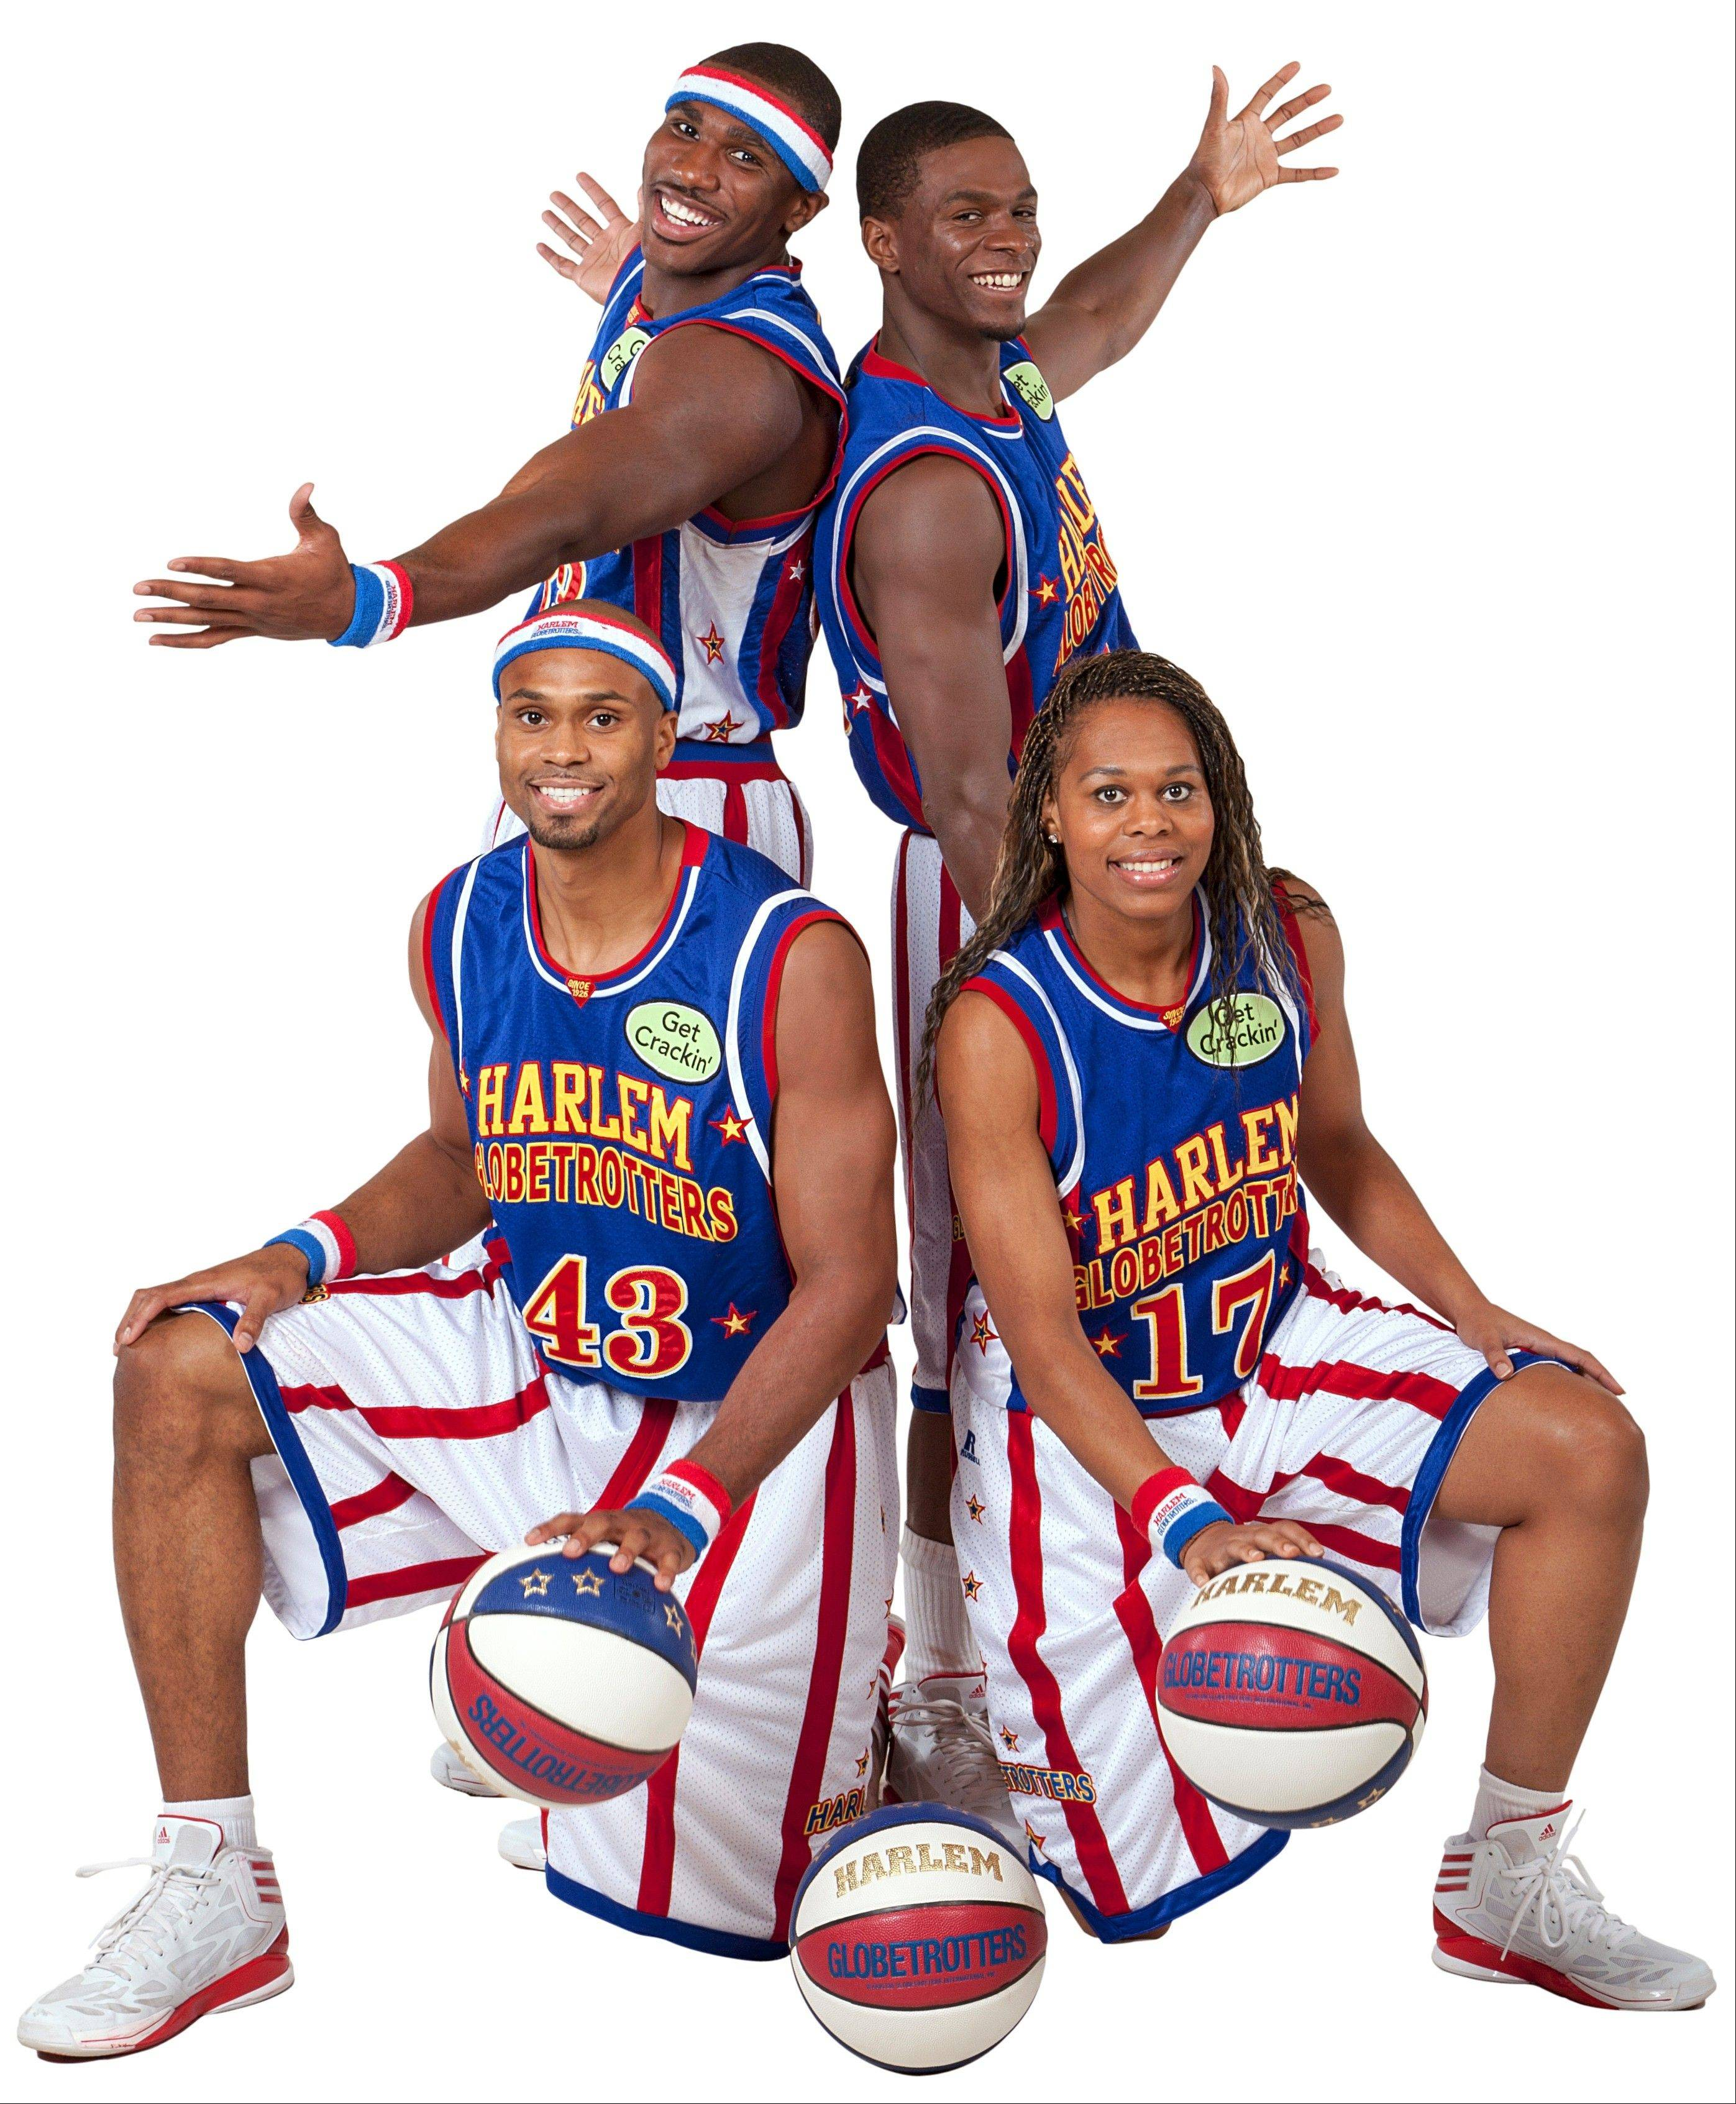 The Harlem Globetrotters play two exhibition games Friday, Dec. 27, at the Allstate Arena in Rosemont.